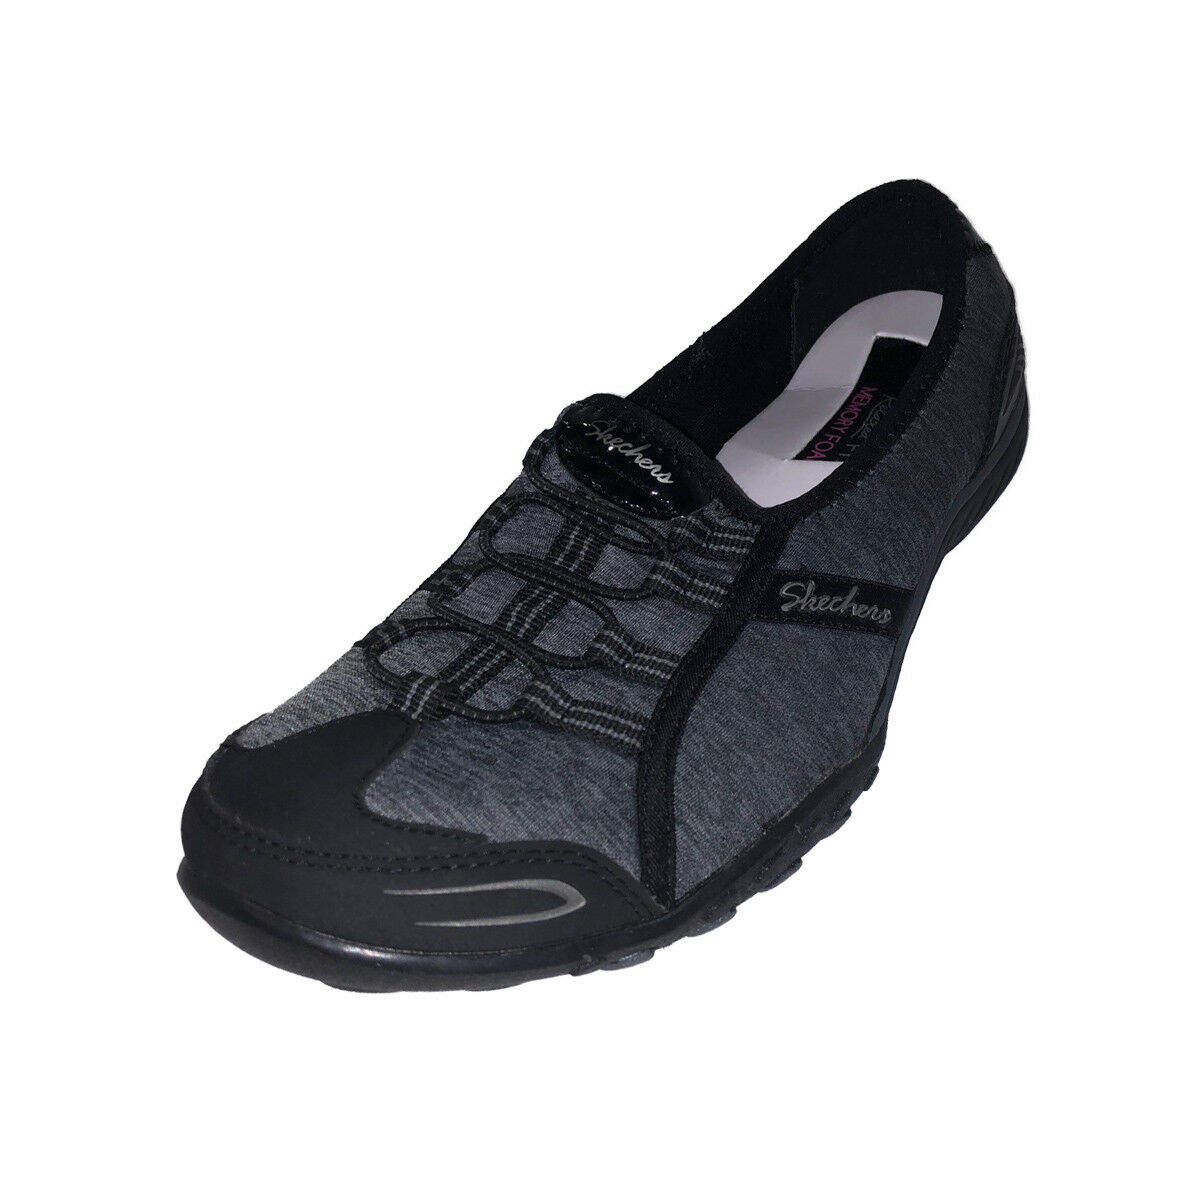 Skechers Relaxed Fit Womens Walking Shoes Memory Foam Special limited time